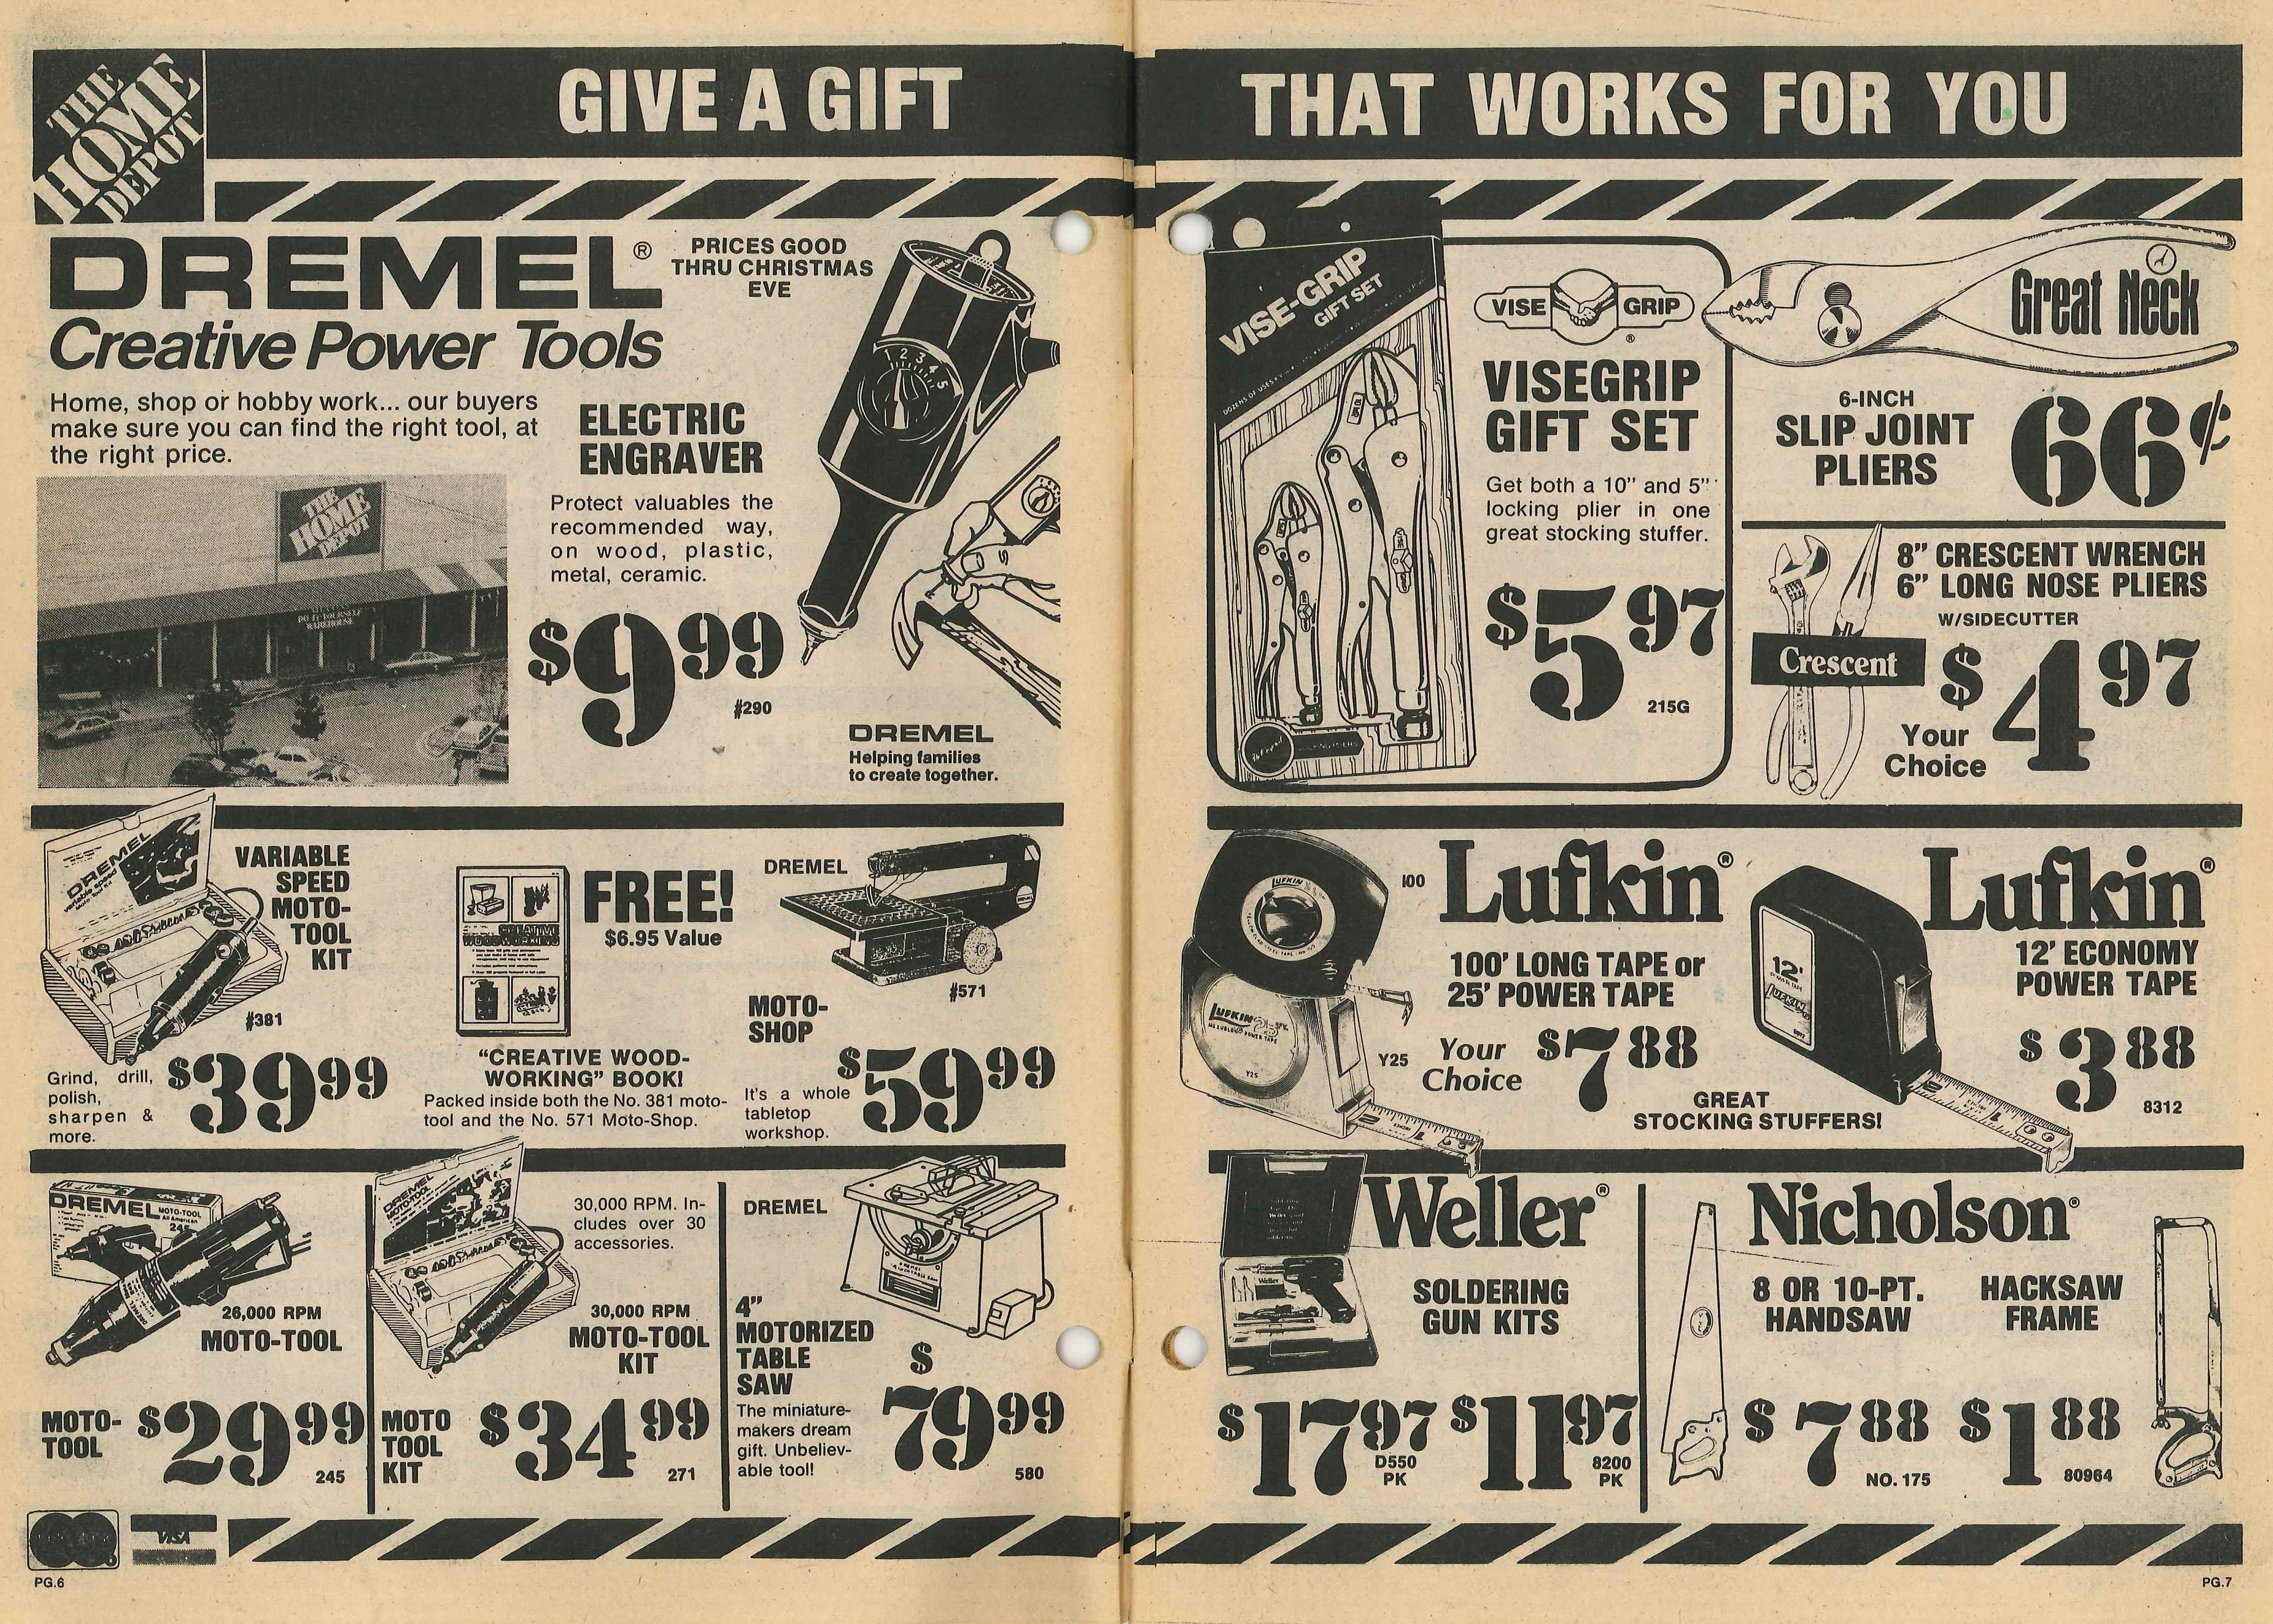 Throwback Thursday: Home Depot Holiday